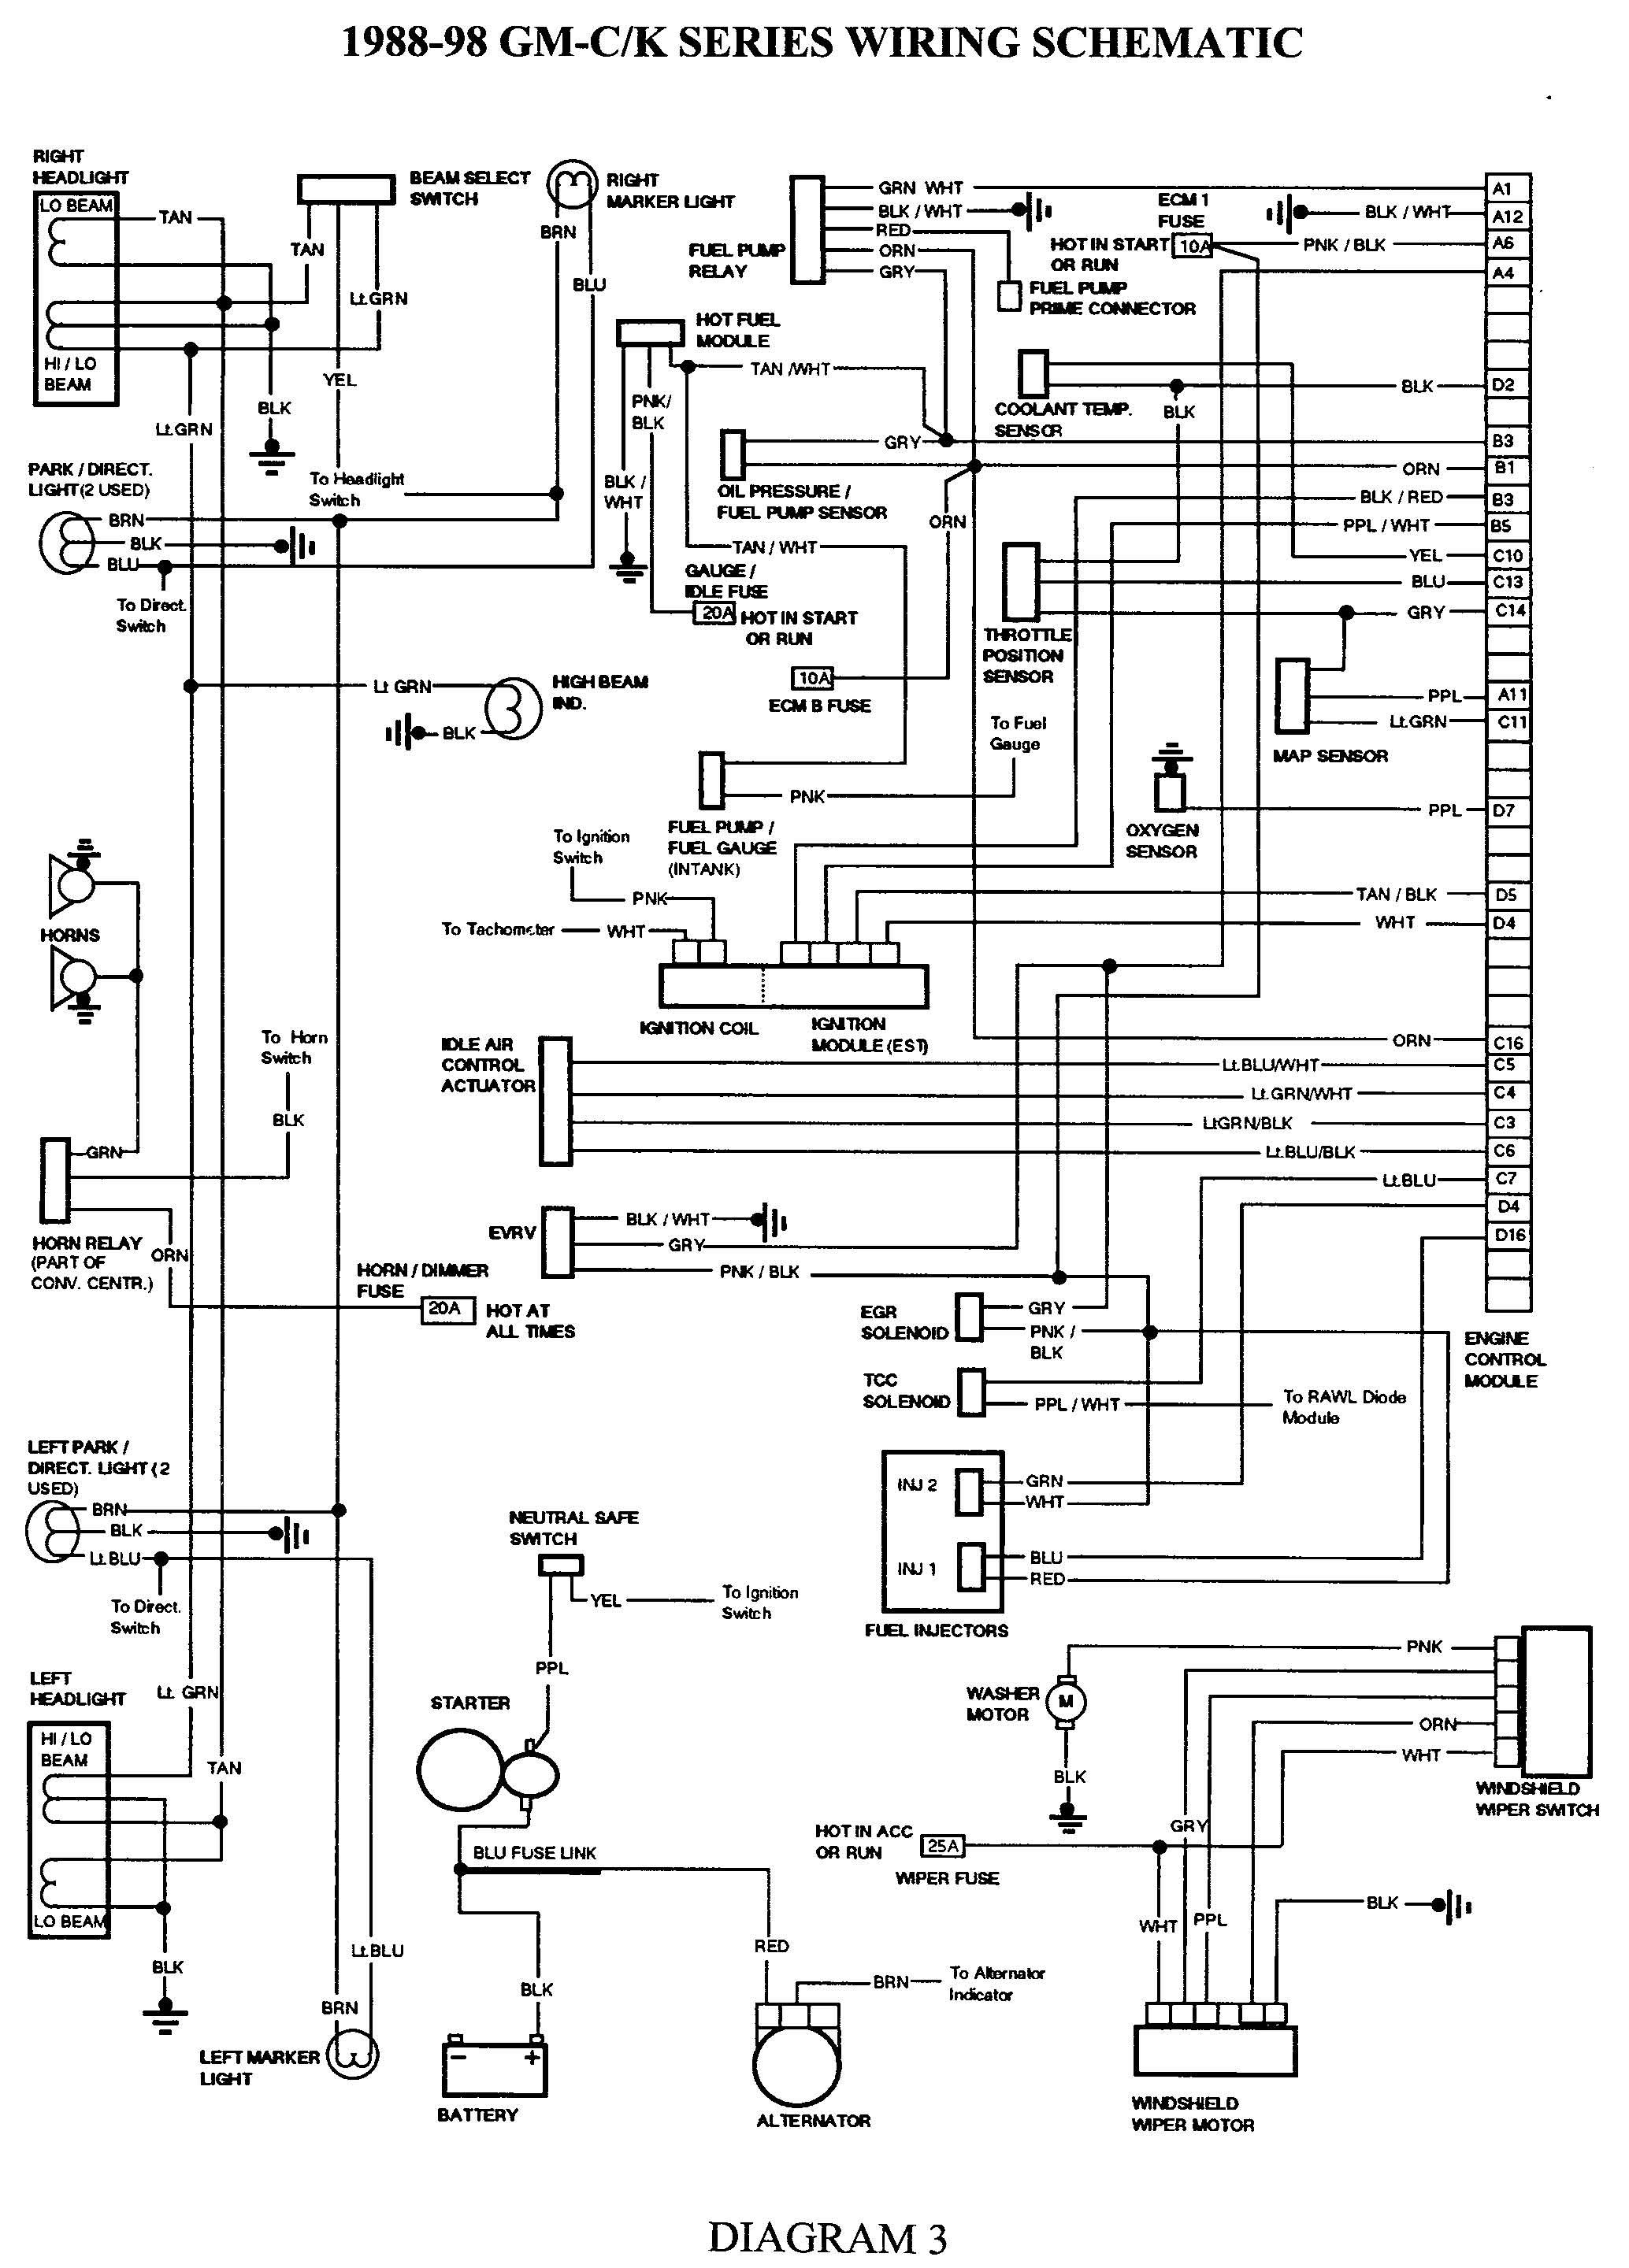 1998 gmc suburban wiring diagram gmc truck wiring diagrams on gm wiring harness diagram 88 ... 1989 gmc suburban wiring diagram #8